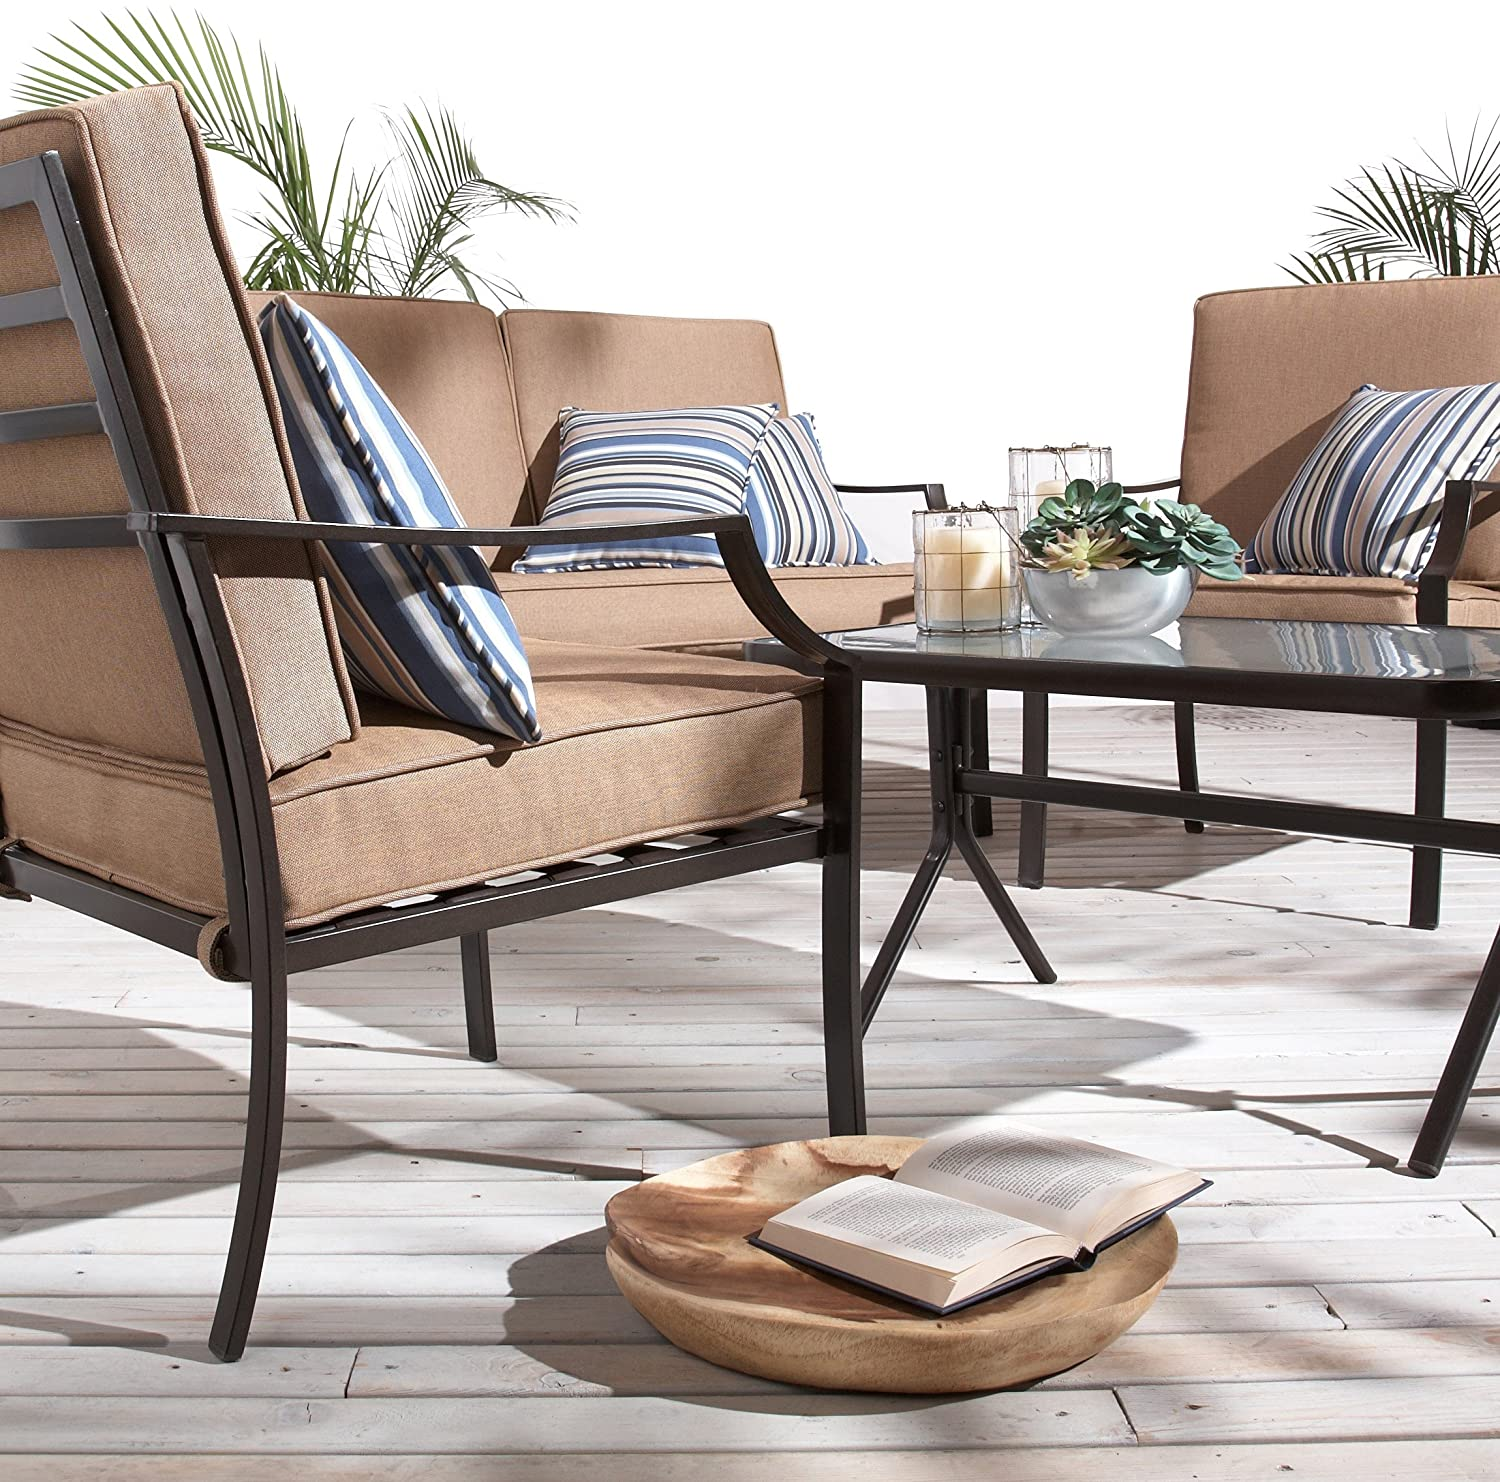 New Strathwood Brentwood 4 Piece Outdoor Furniture Set